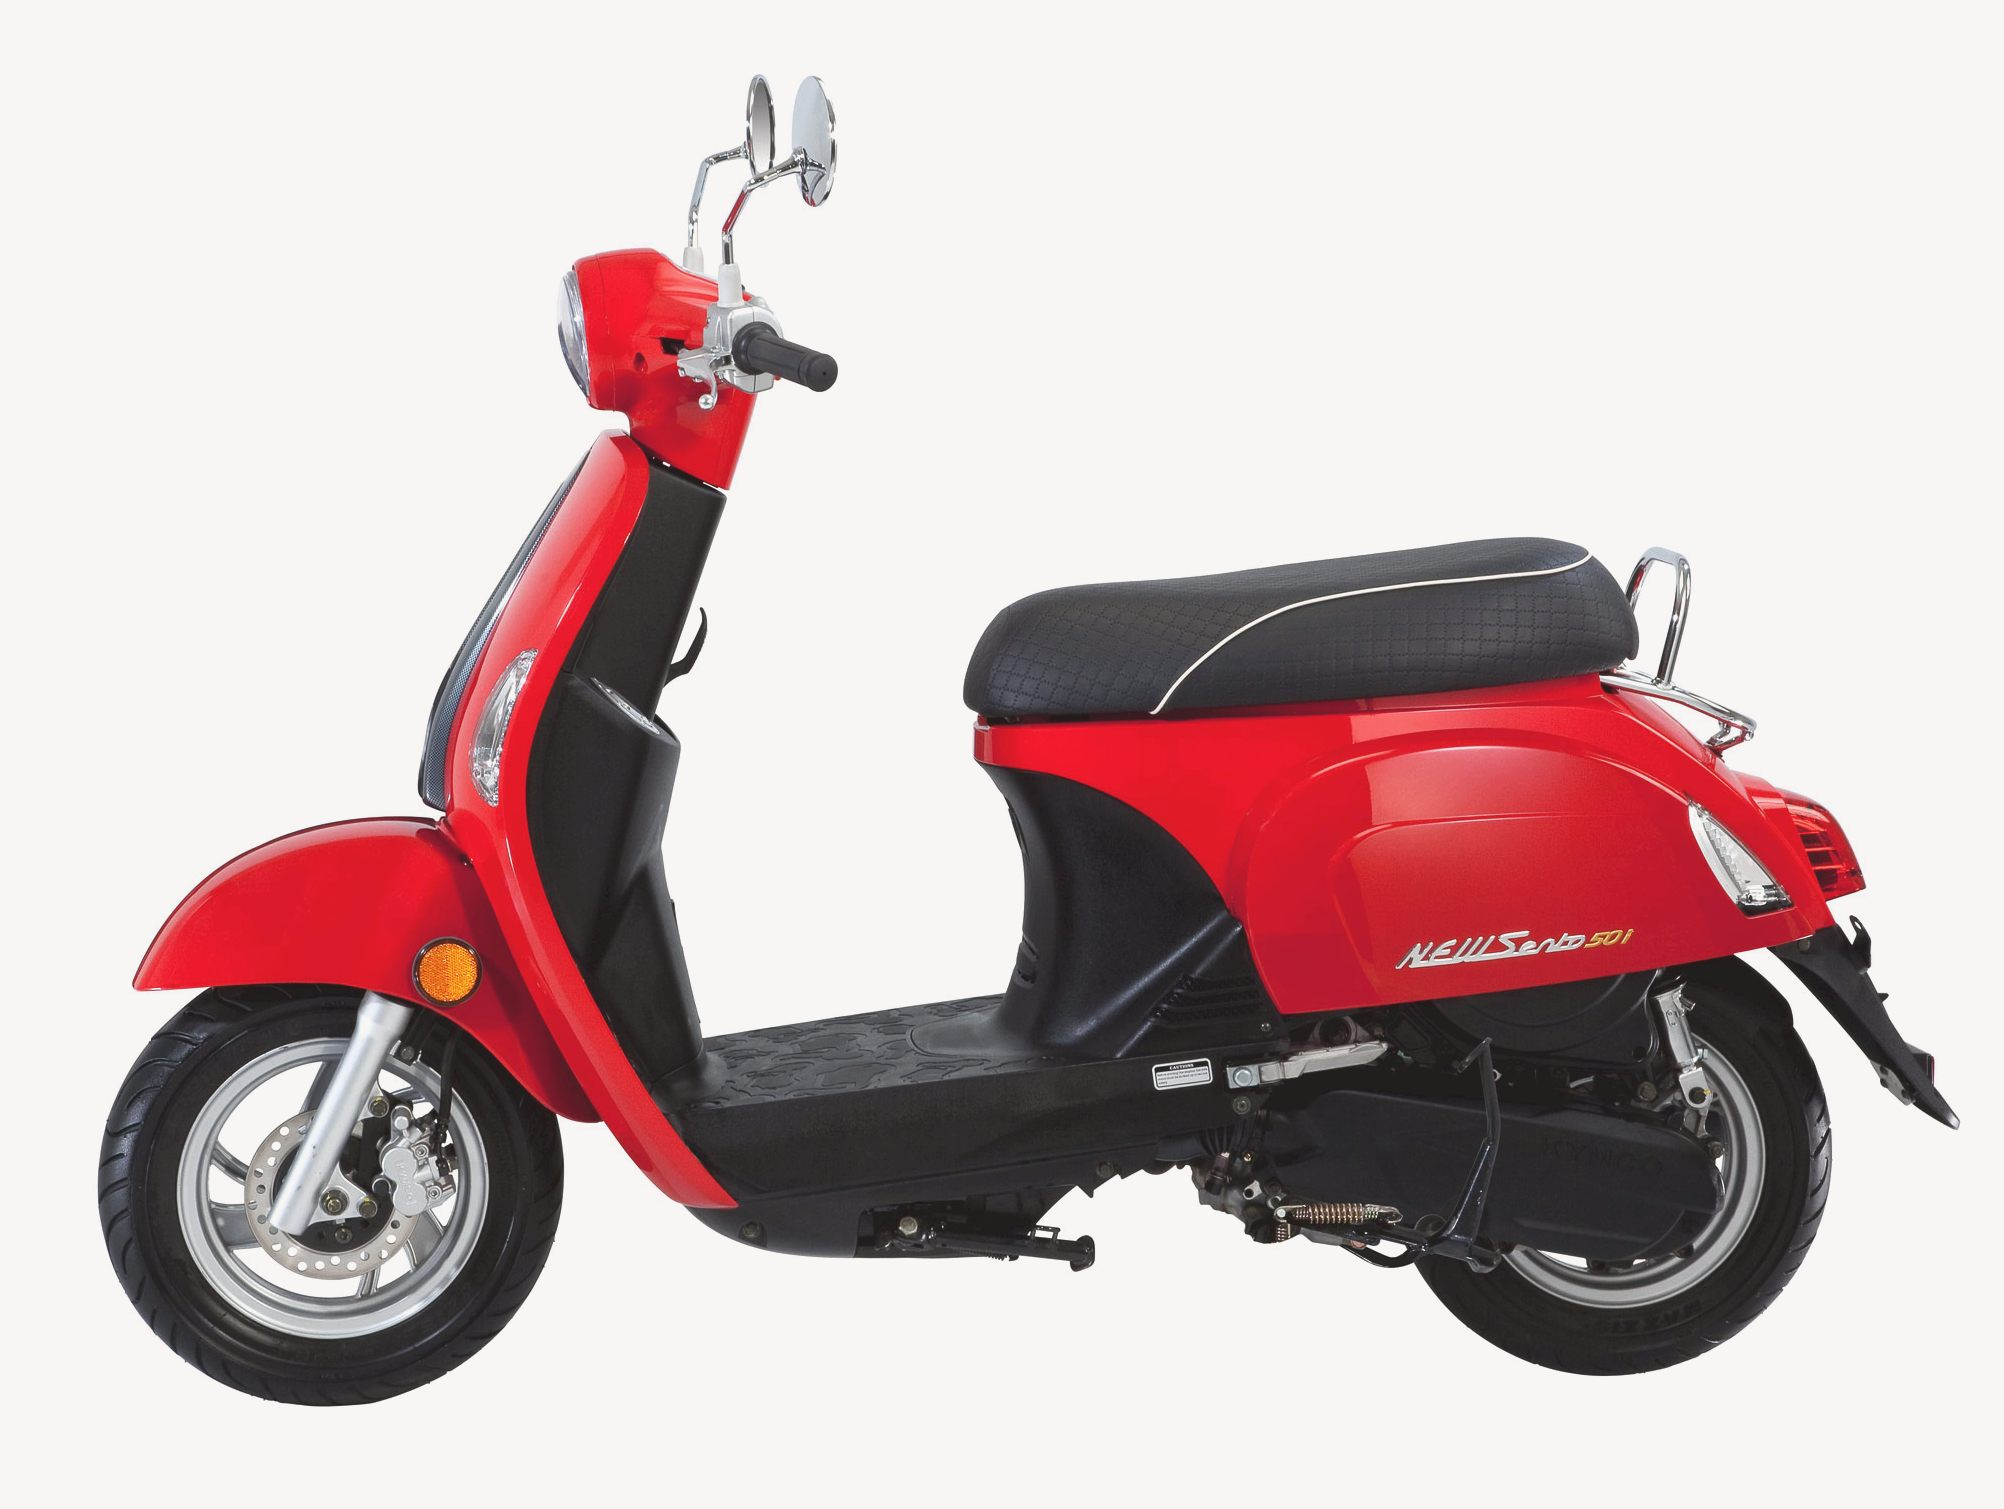 Kymco Vitality 50 2005 images #101901